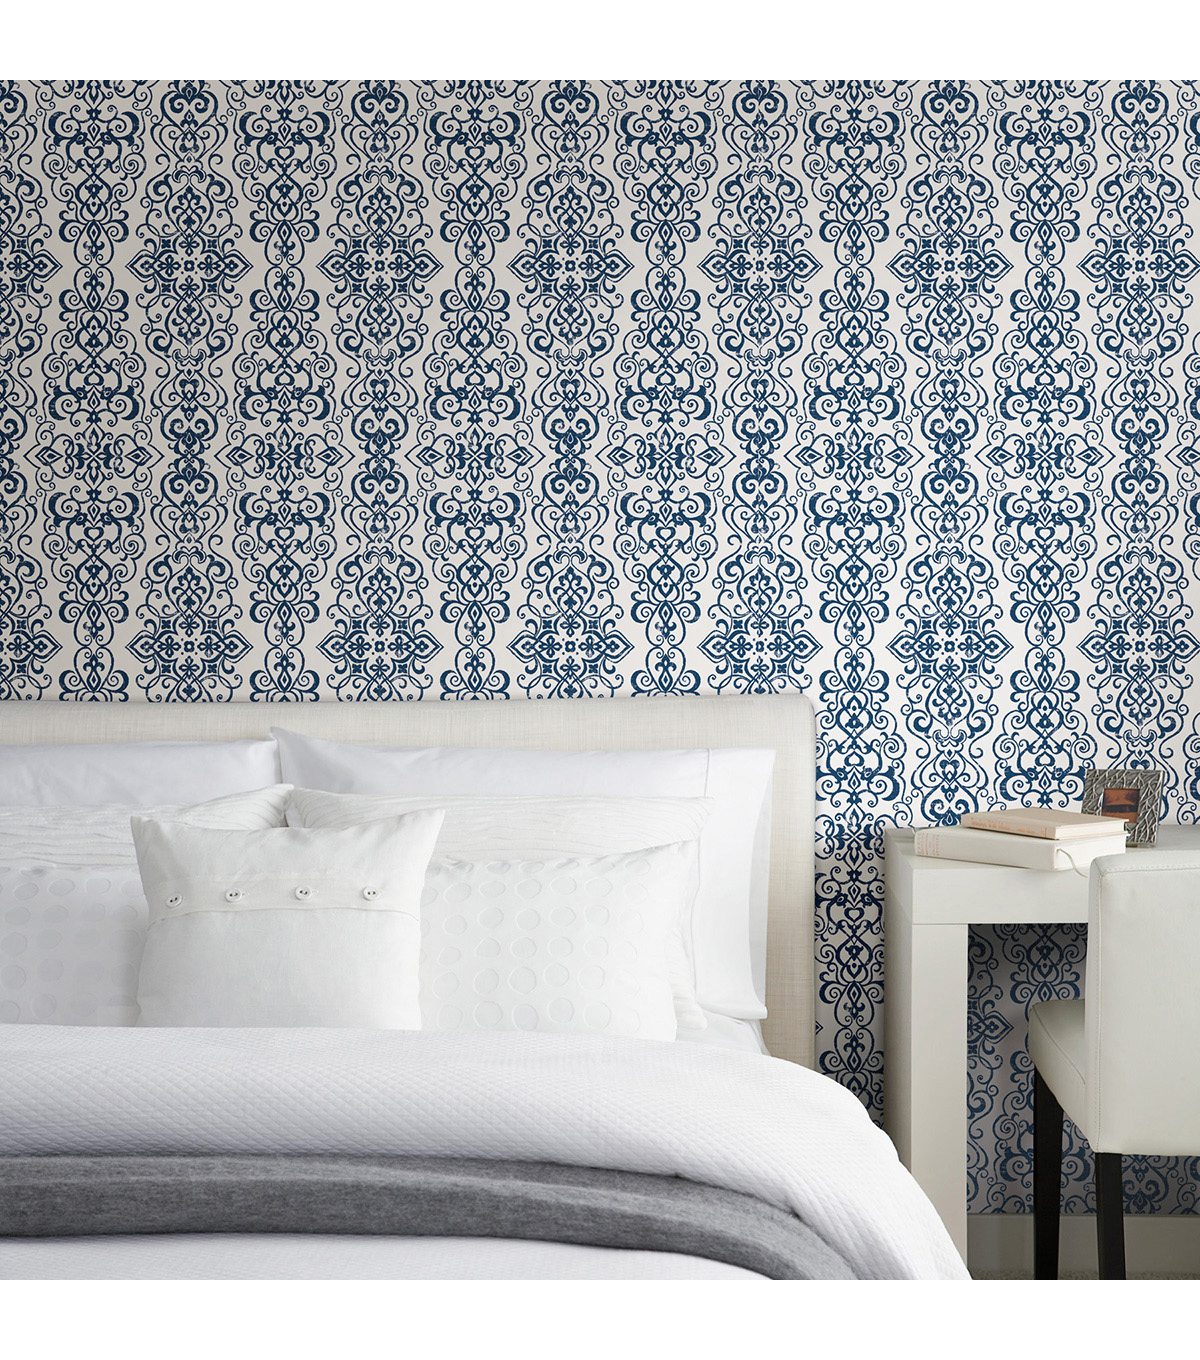 WallPops® NuWallpaper™ Marrakesh Stripe Peel and Stick Wallpaper